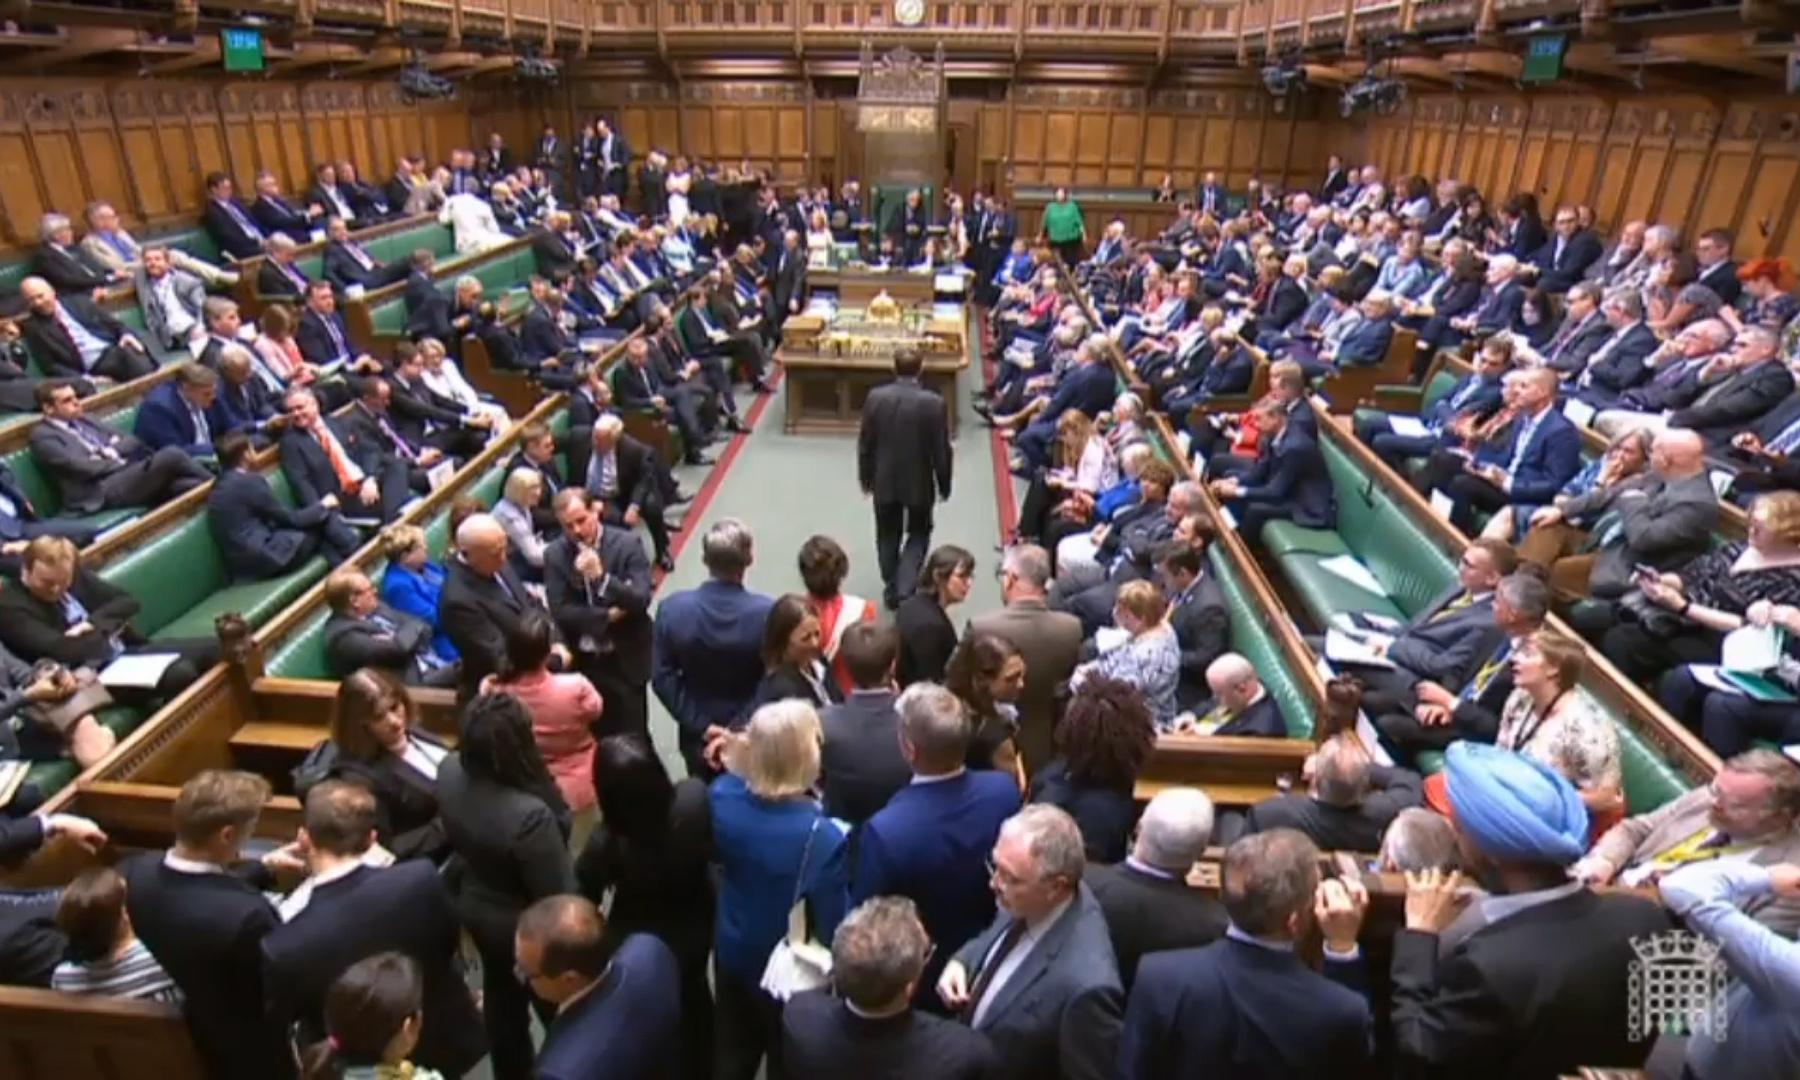 Could parliament's latest amendment stop no-deal Brexit?